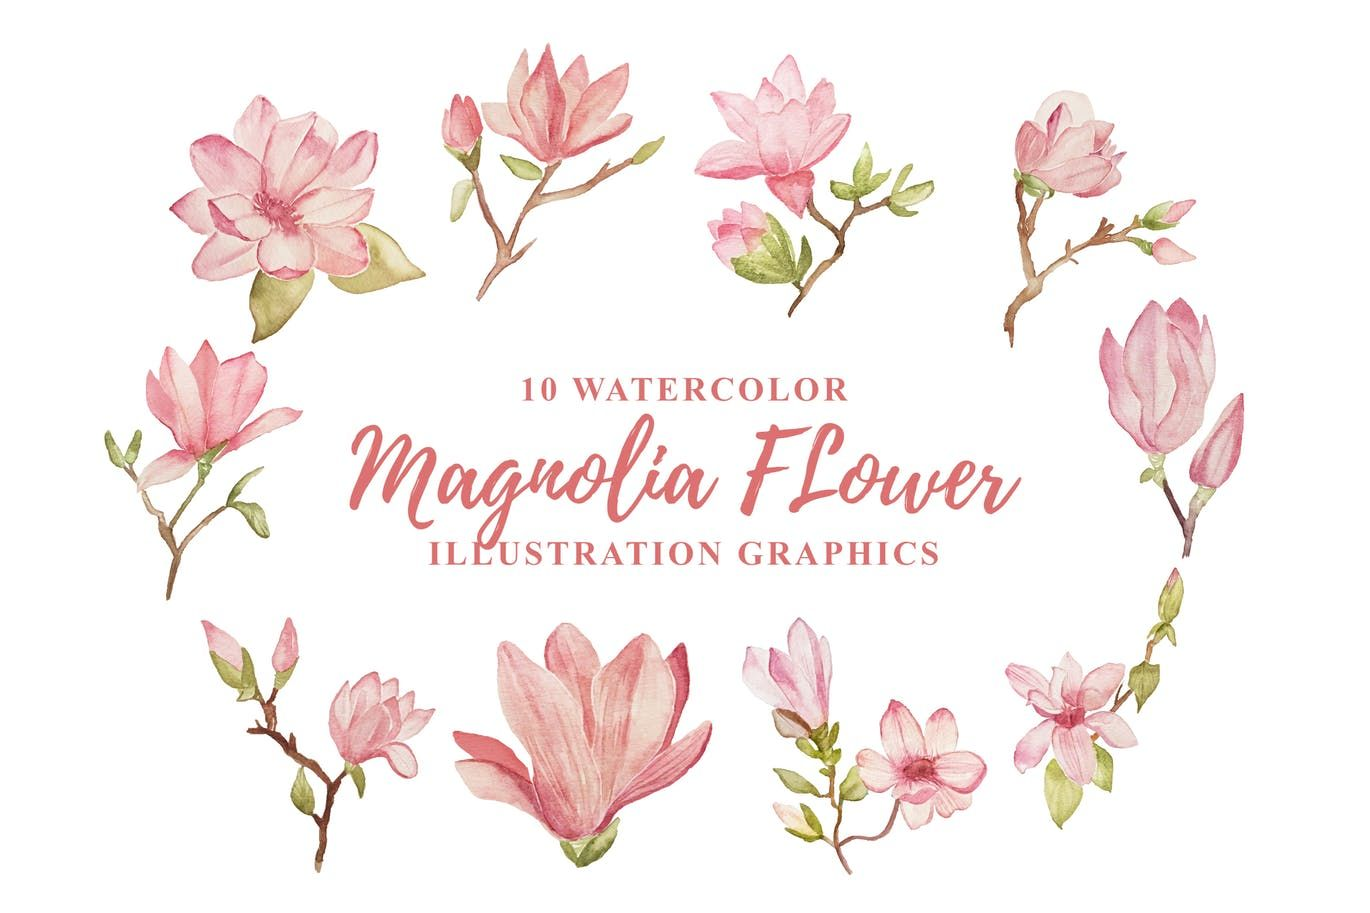 10 Watercolor Magnolia Flower Illustration Graphic By Ianmikraz On